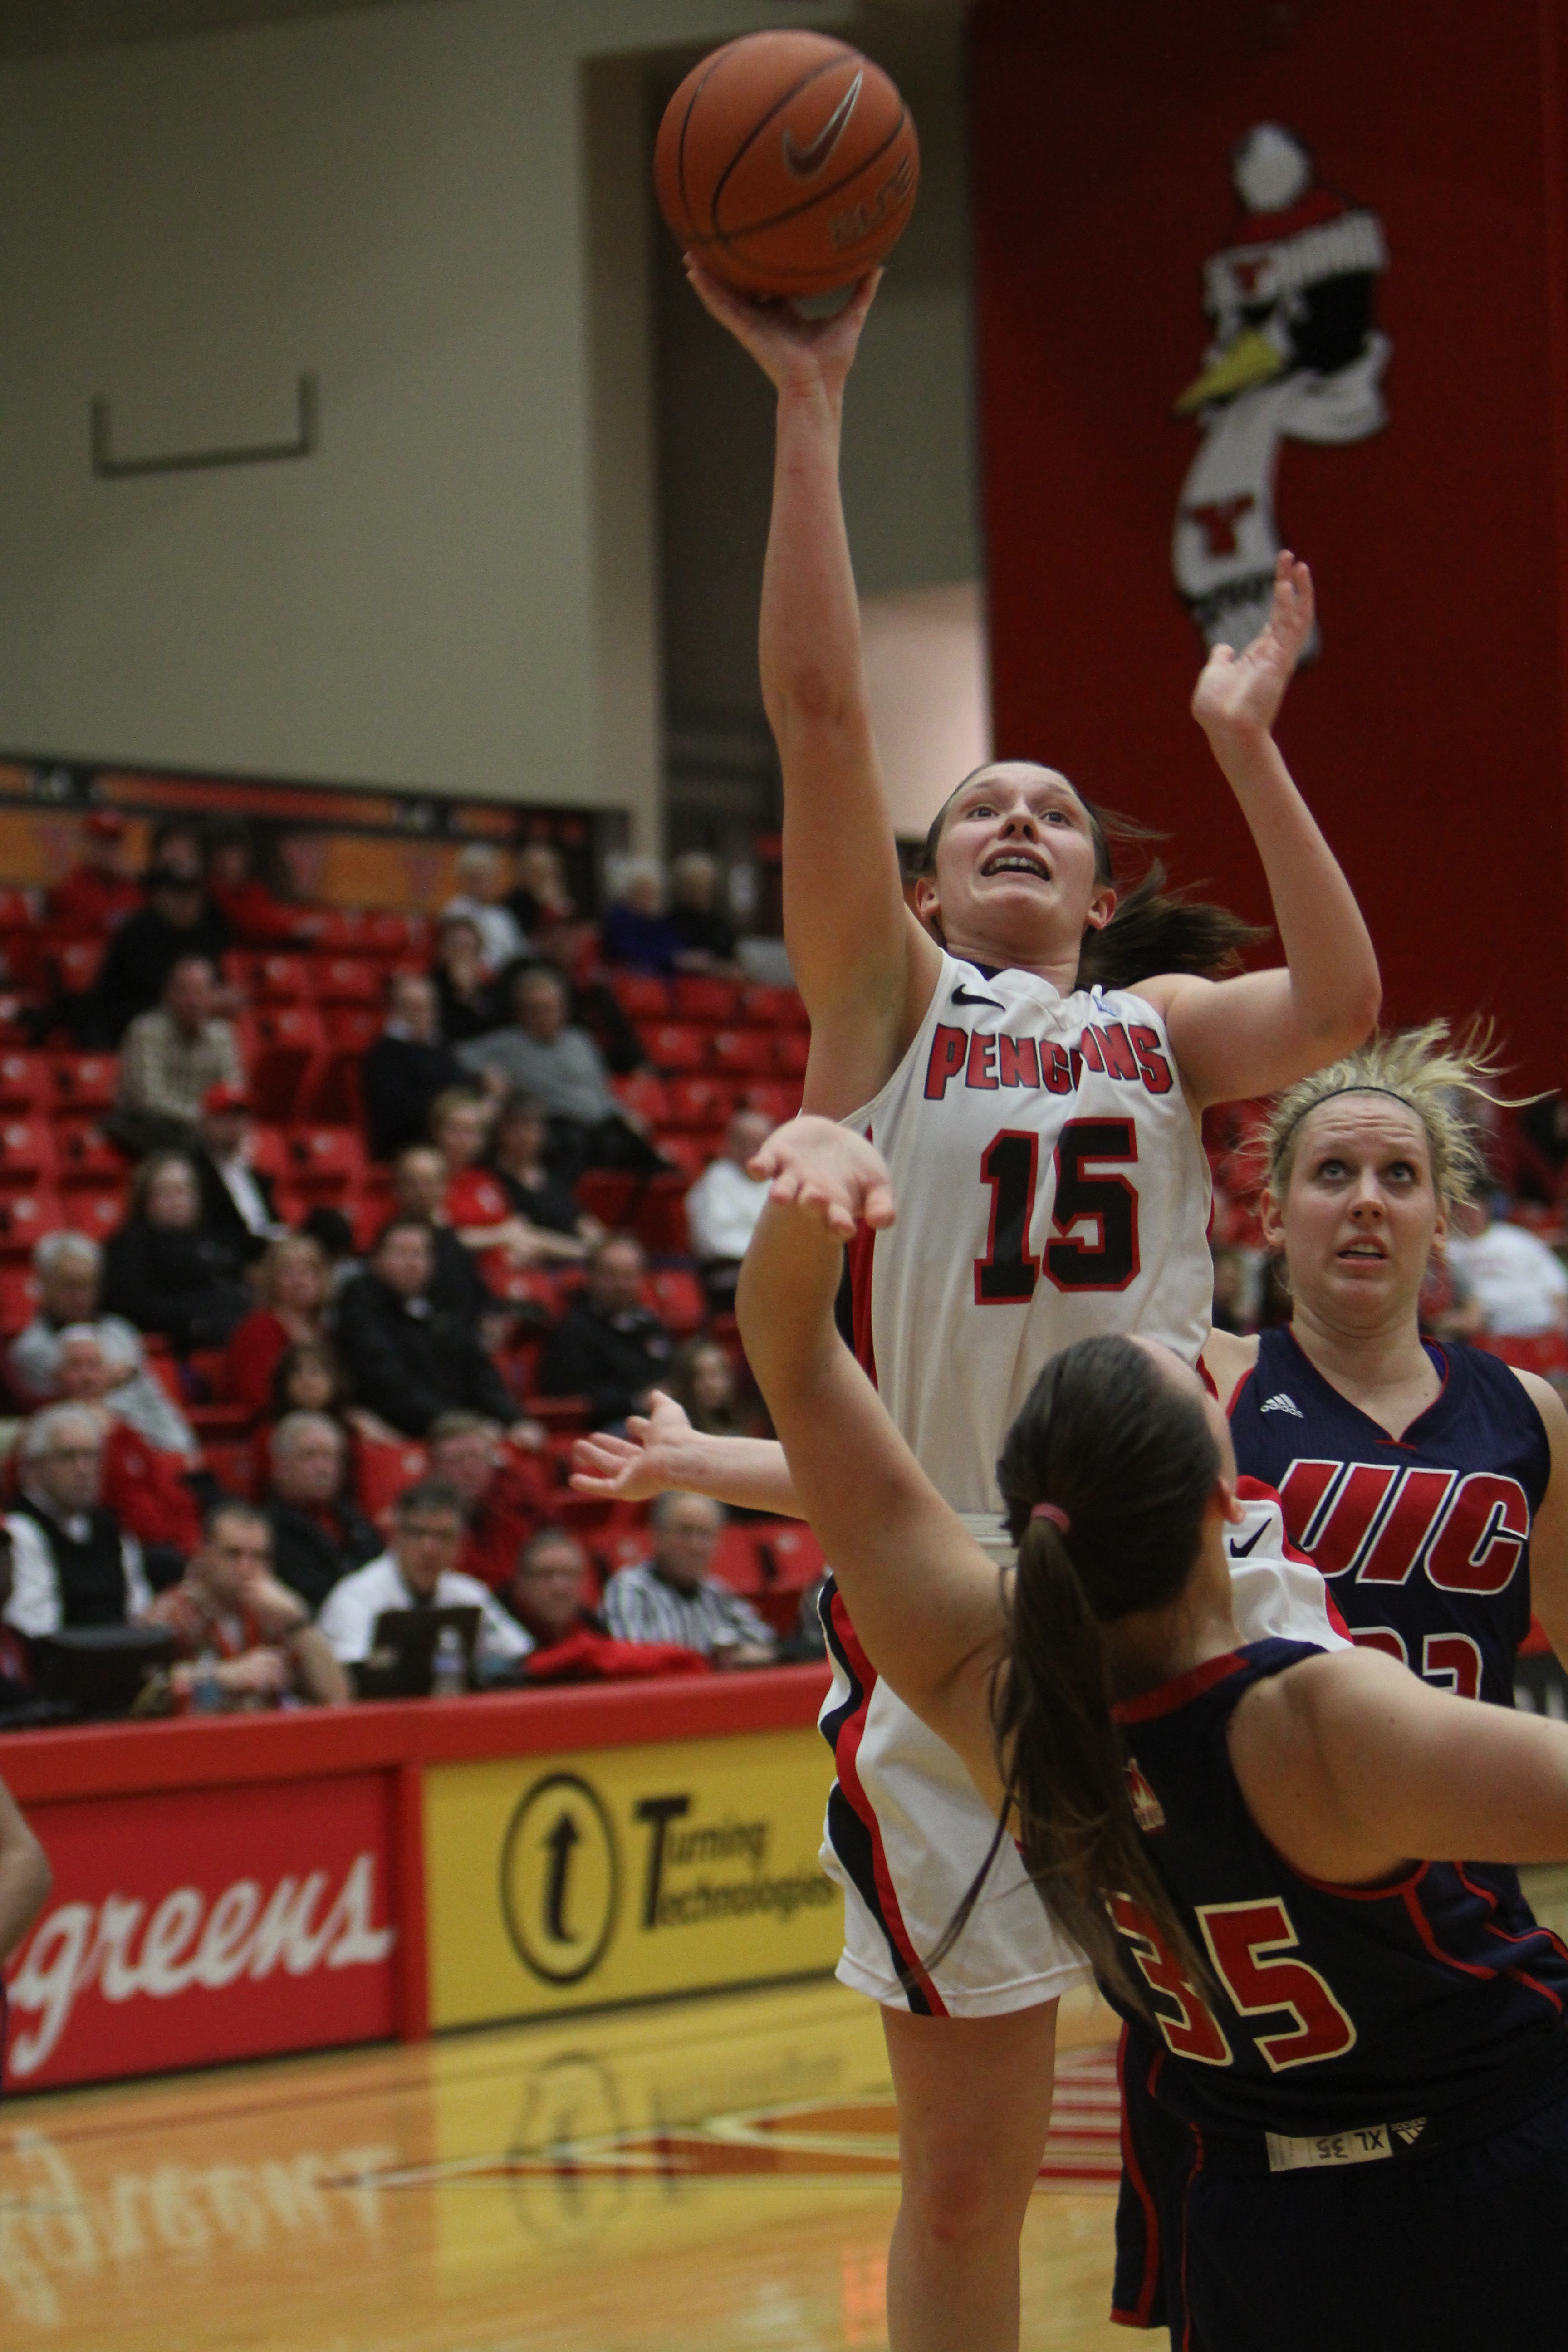 Youngstown State's Heidi Schlegel (15) puts up a jumper while being defended by UIC's Katie Hannemann (35) during the first half of Thursday night's loss at the Beeghly Center. Photo by Dustin Livesay/ The Jambar.